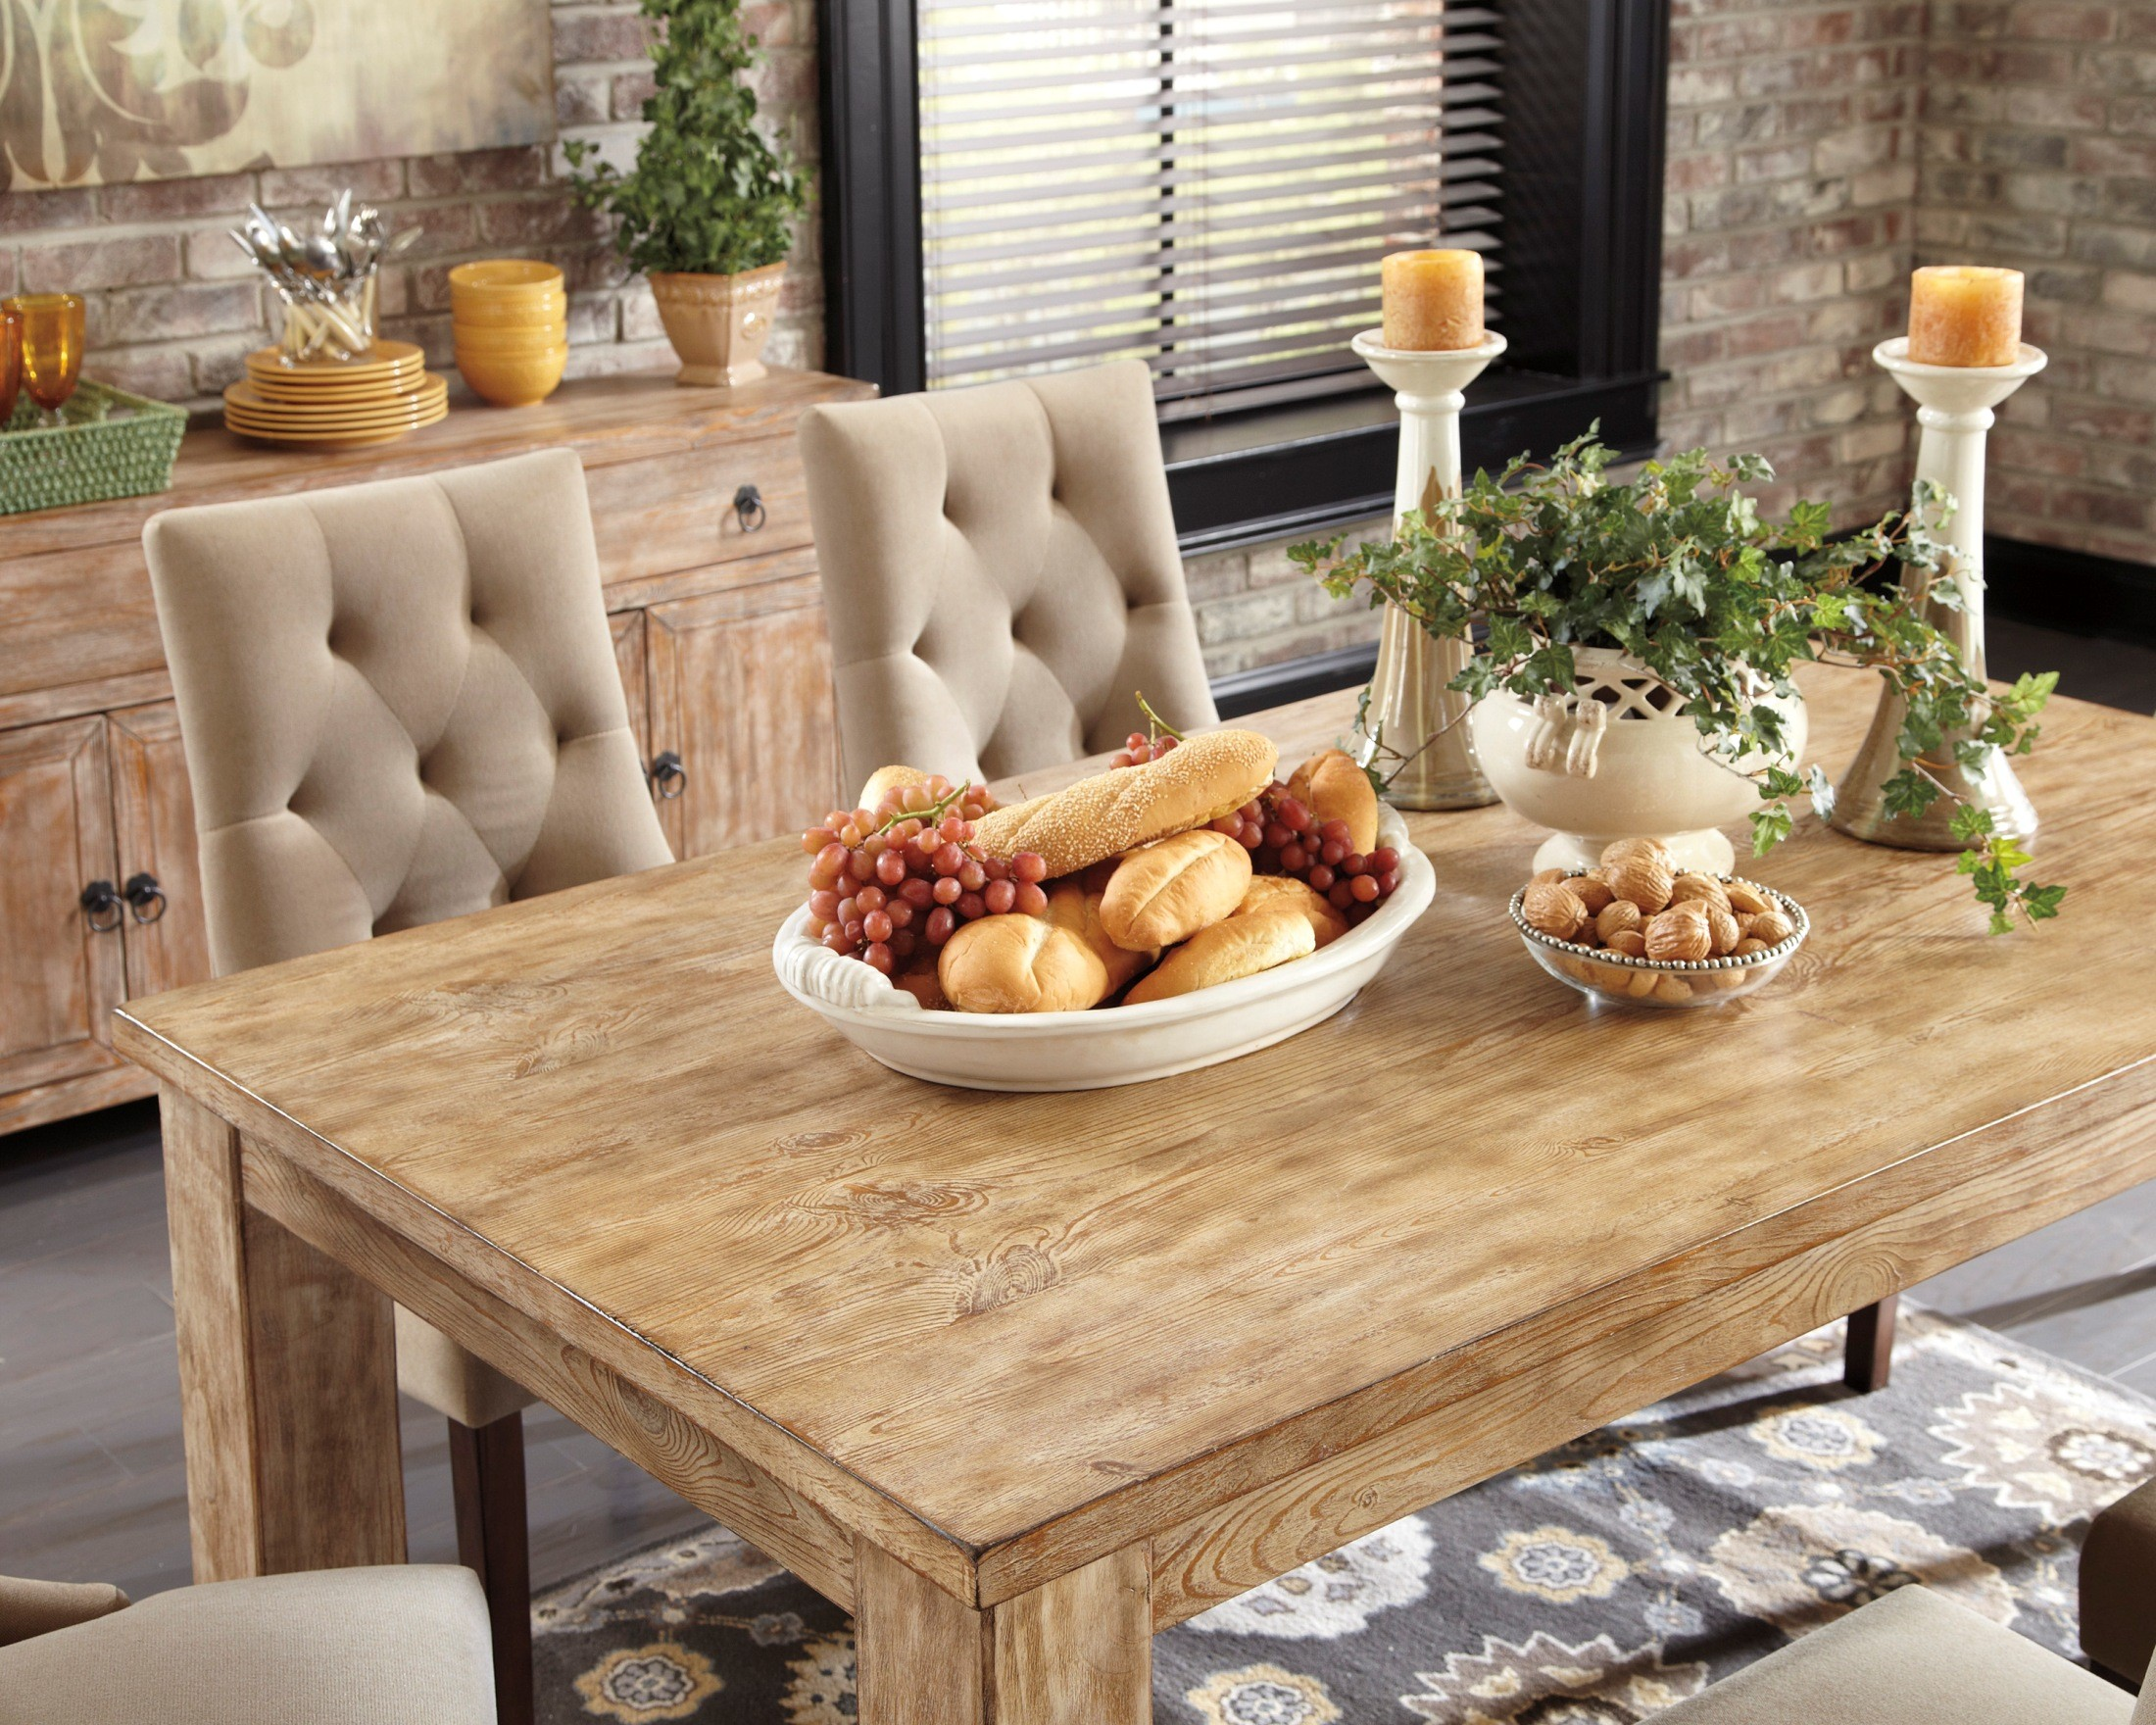 Room dining room groups mestler bisque rectangular dining room table - Mestler Driftwood Rectangular Dining Room Table From Ashley D540225 Coleman Furniture